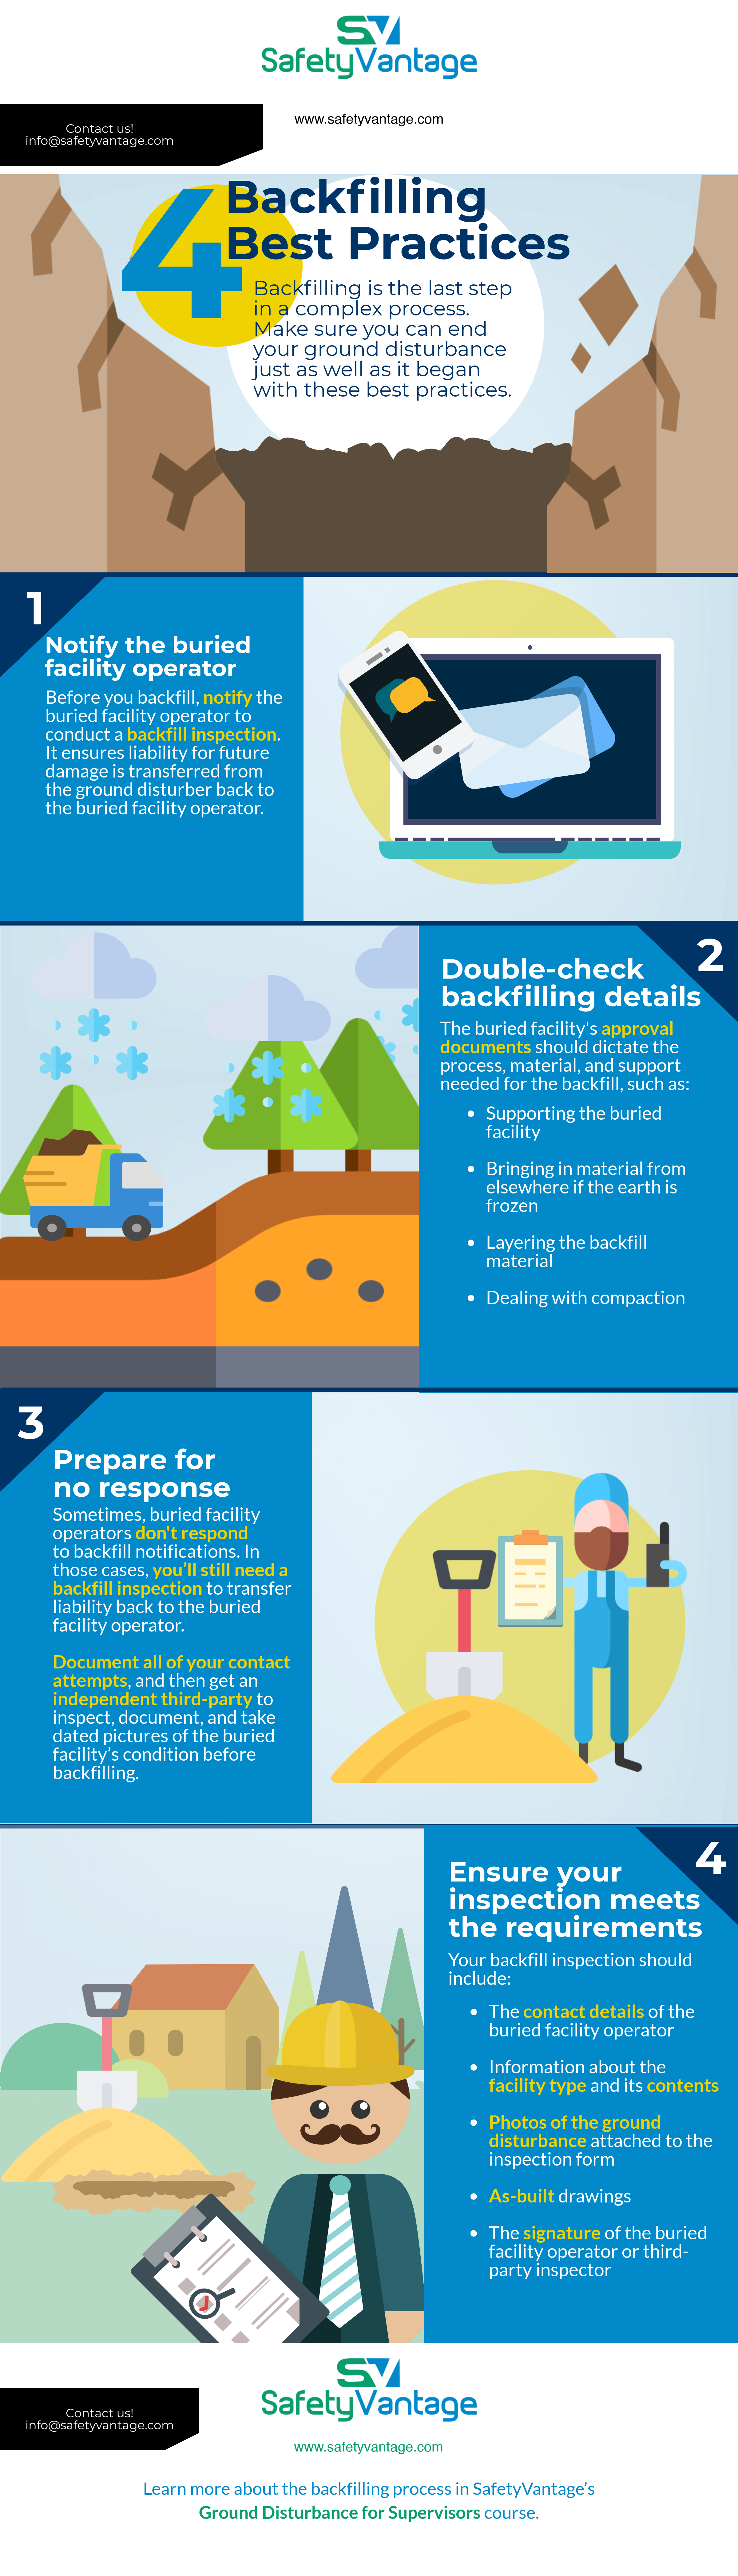 InfoGraphic - Backfilling is the last step in the ground disturbance process. Make sure you finish it right with these four best practices.